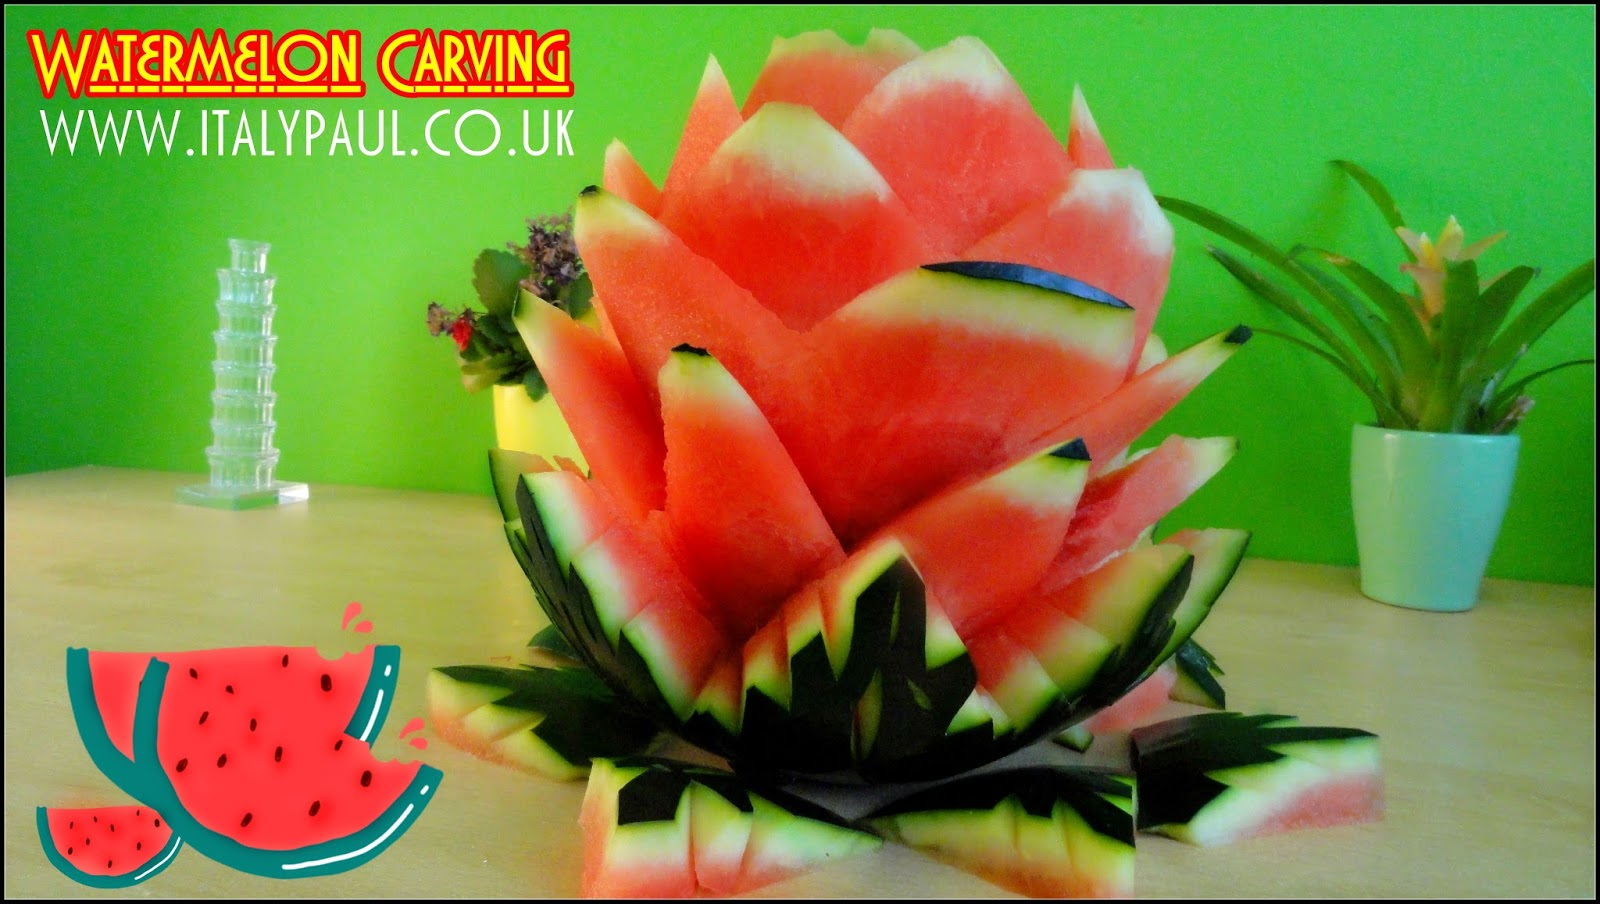 Italypaul art in fruit vegetable carving lessons august